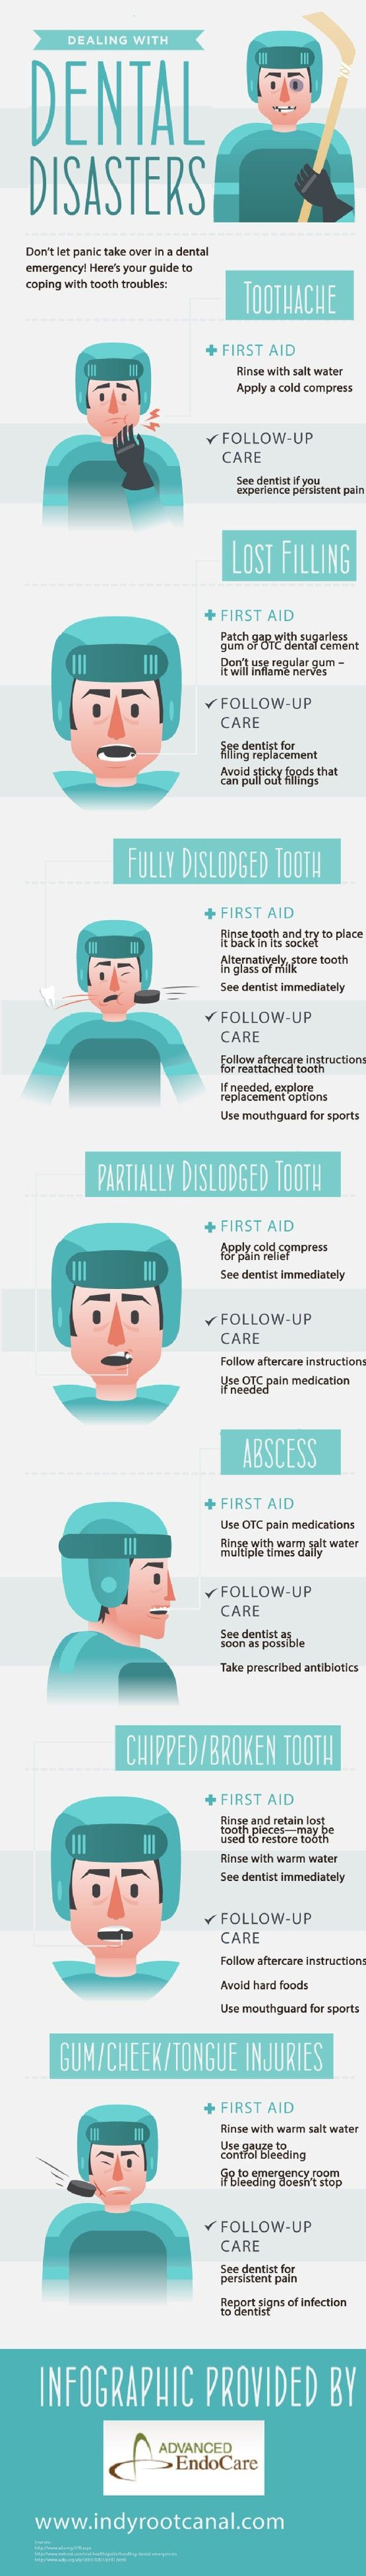 When a patient has a partially dislodged tooth, a cold compress can help to ease the pain until he or she can get in to see the dentist. Check out this infographic from Advanced EndoCare in Indianapolis to learn more about dental emergencies.  Dental Assistant Bowling Green 42101 2016 944 Fields Dr. Suite 103 Bowling Green, KY 42104 http://tmiky.com/pinterest